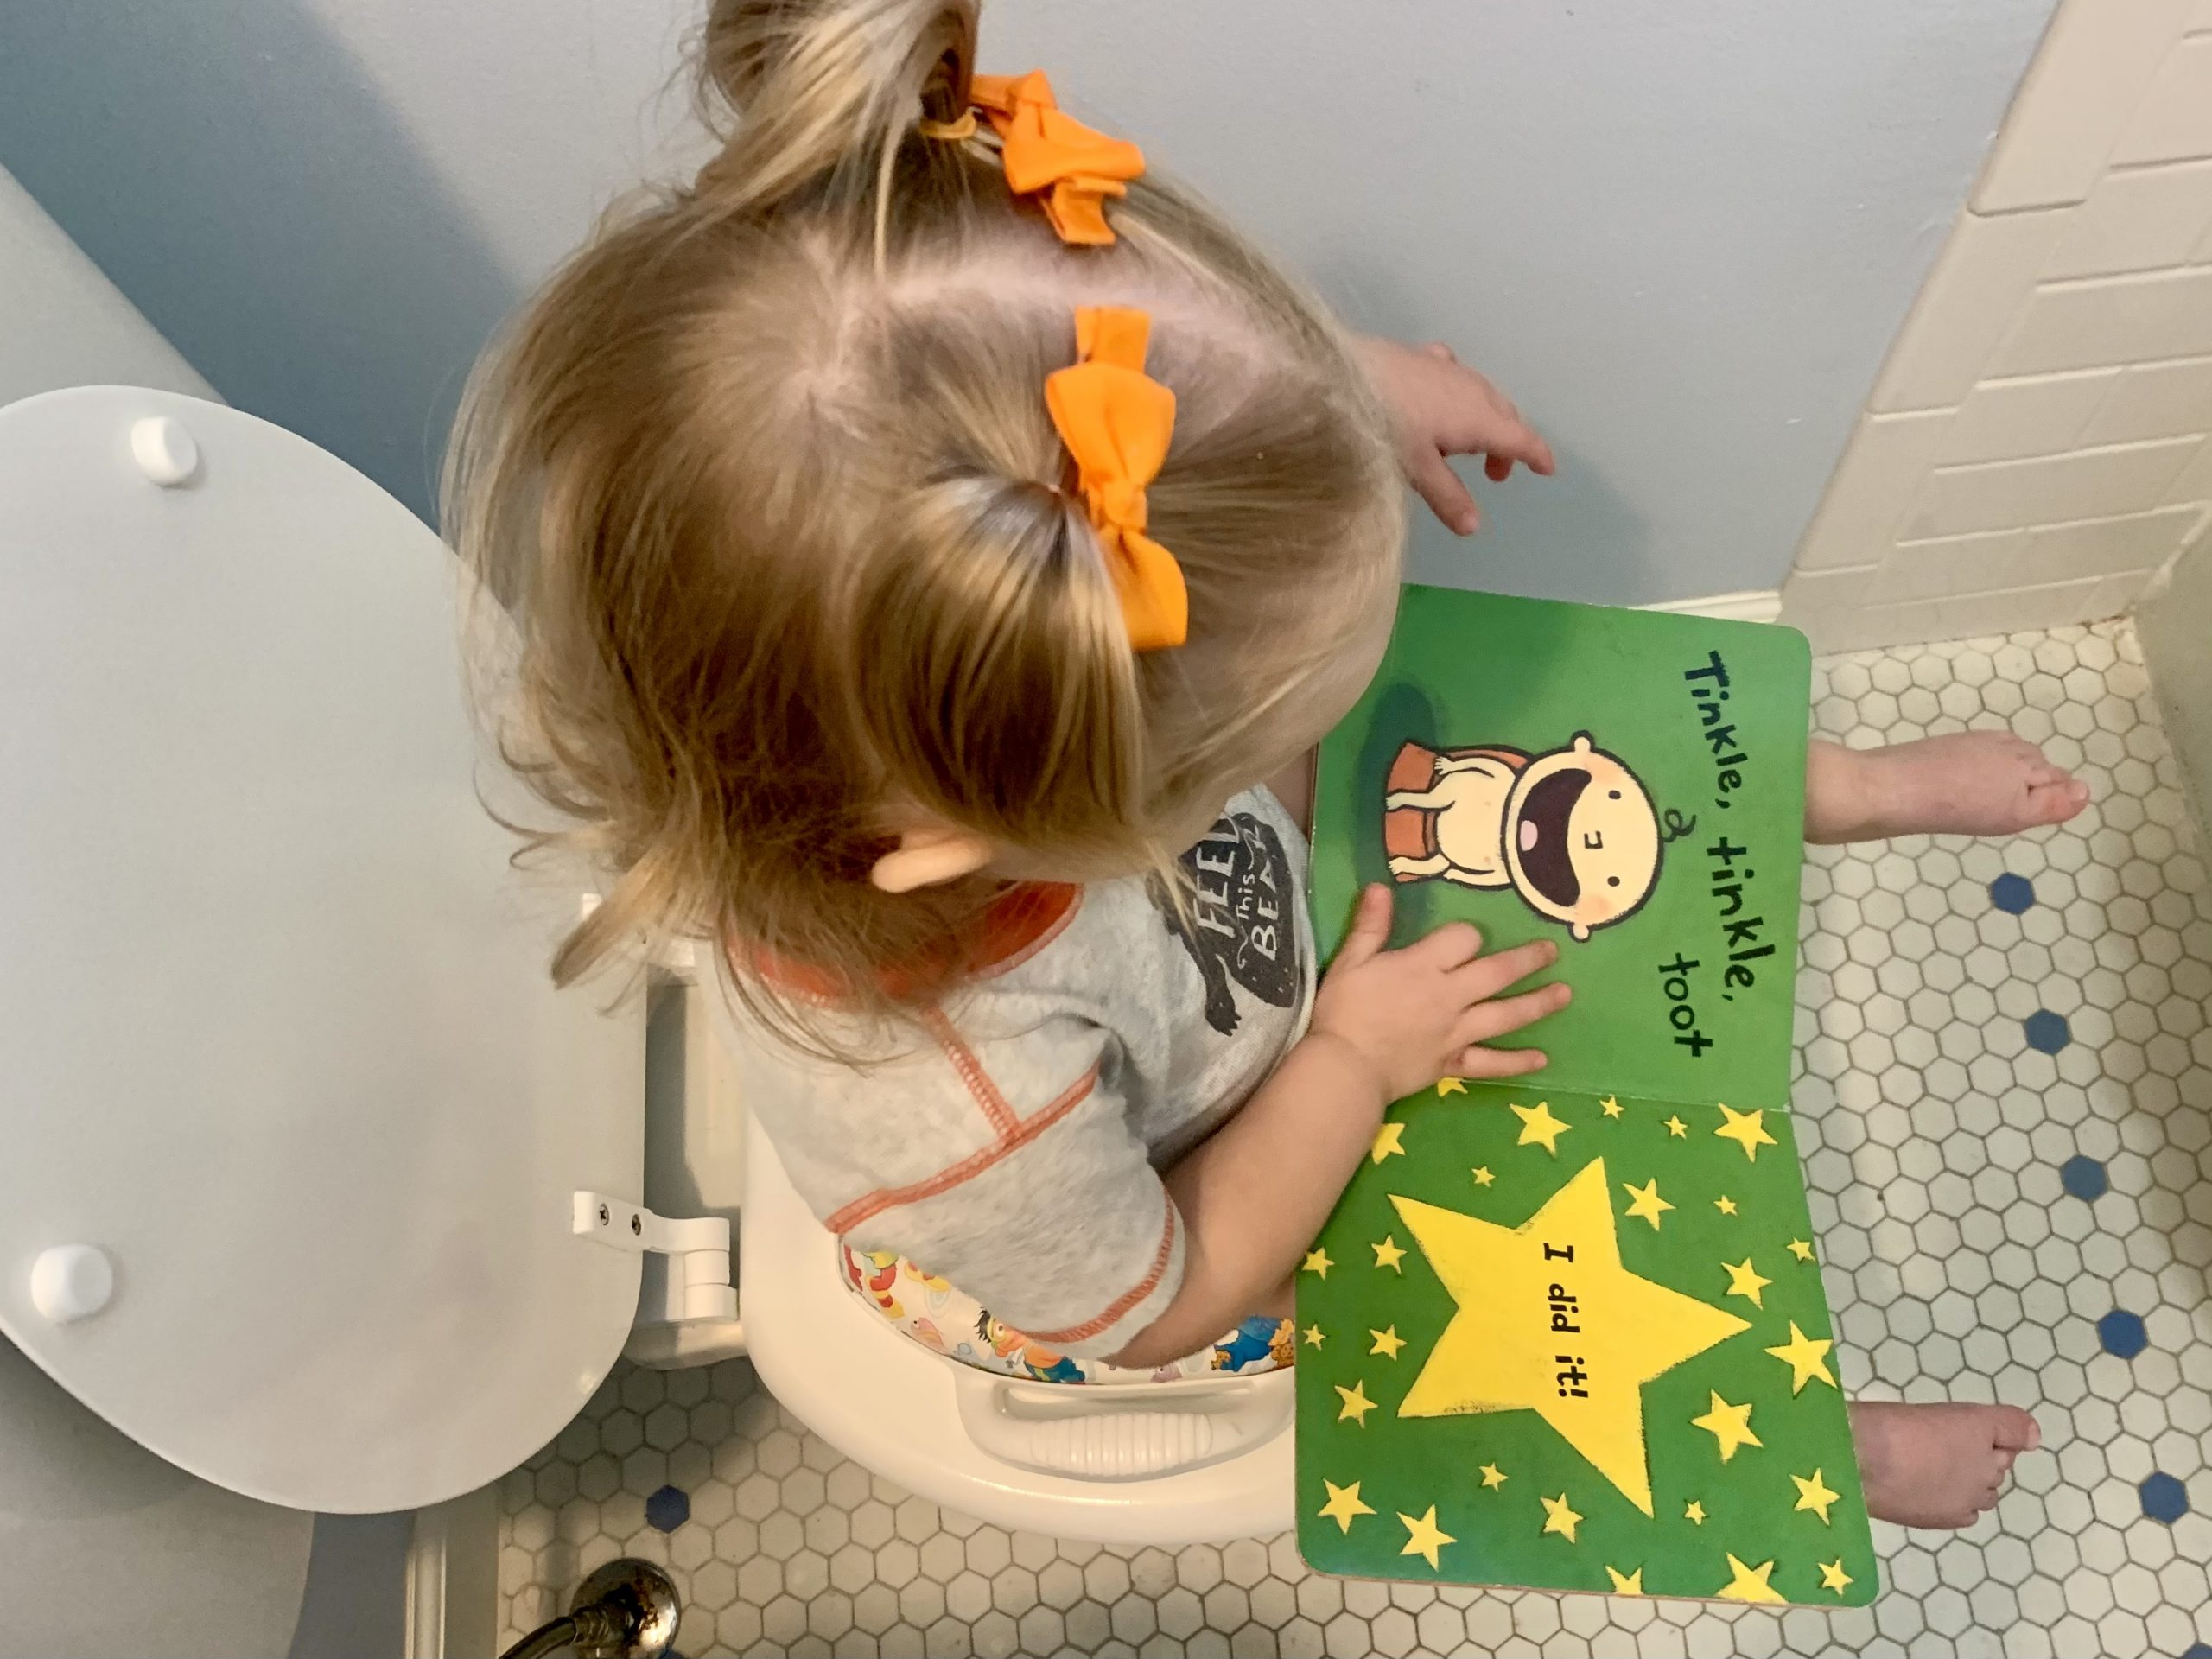 reading potty book with toilet seat reducer